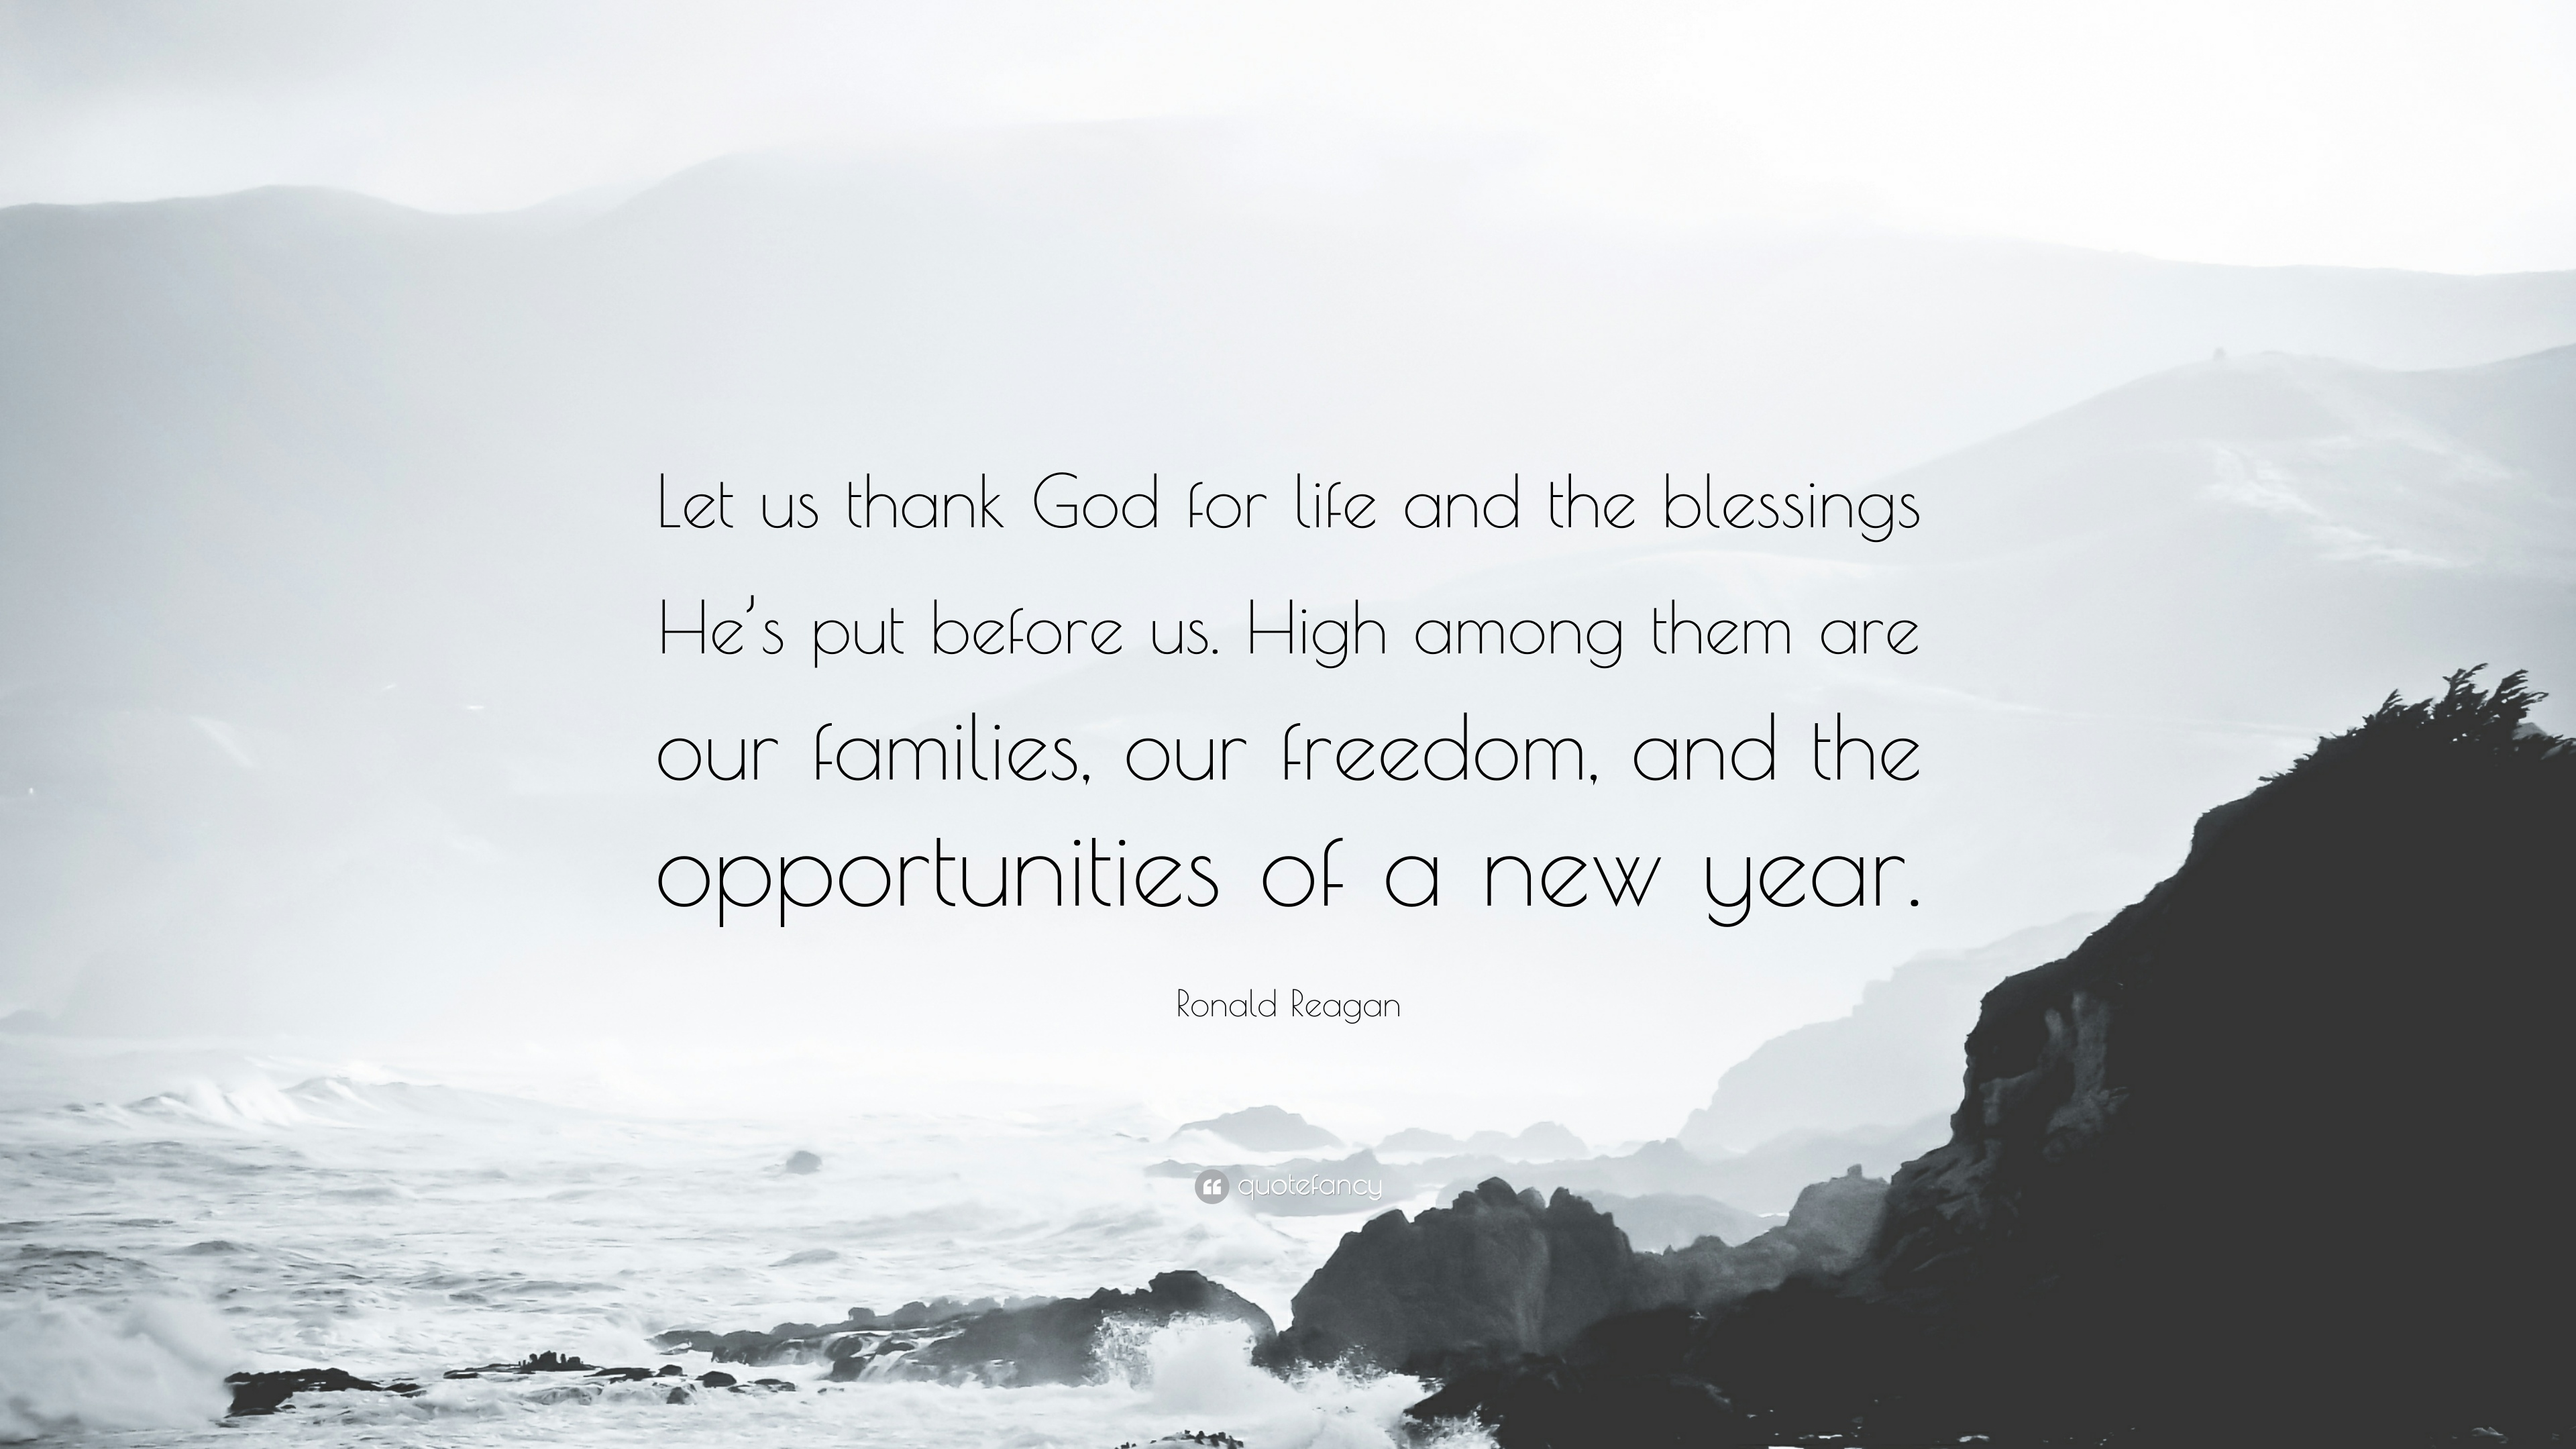 new year quotes let us thank god for life and the blessings hes put